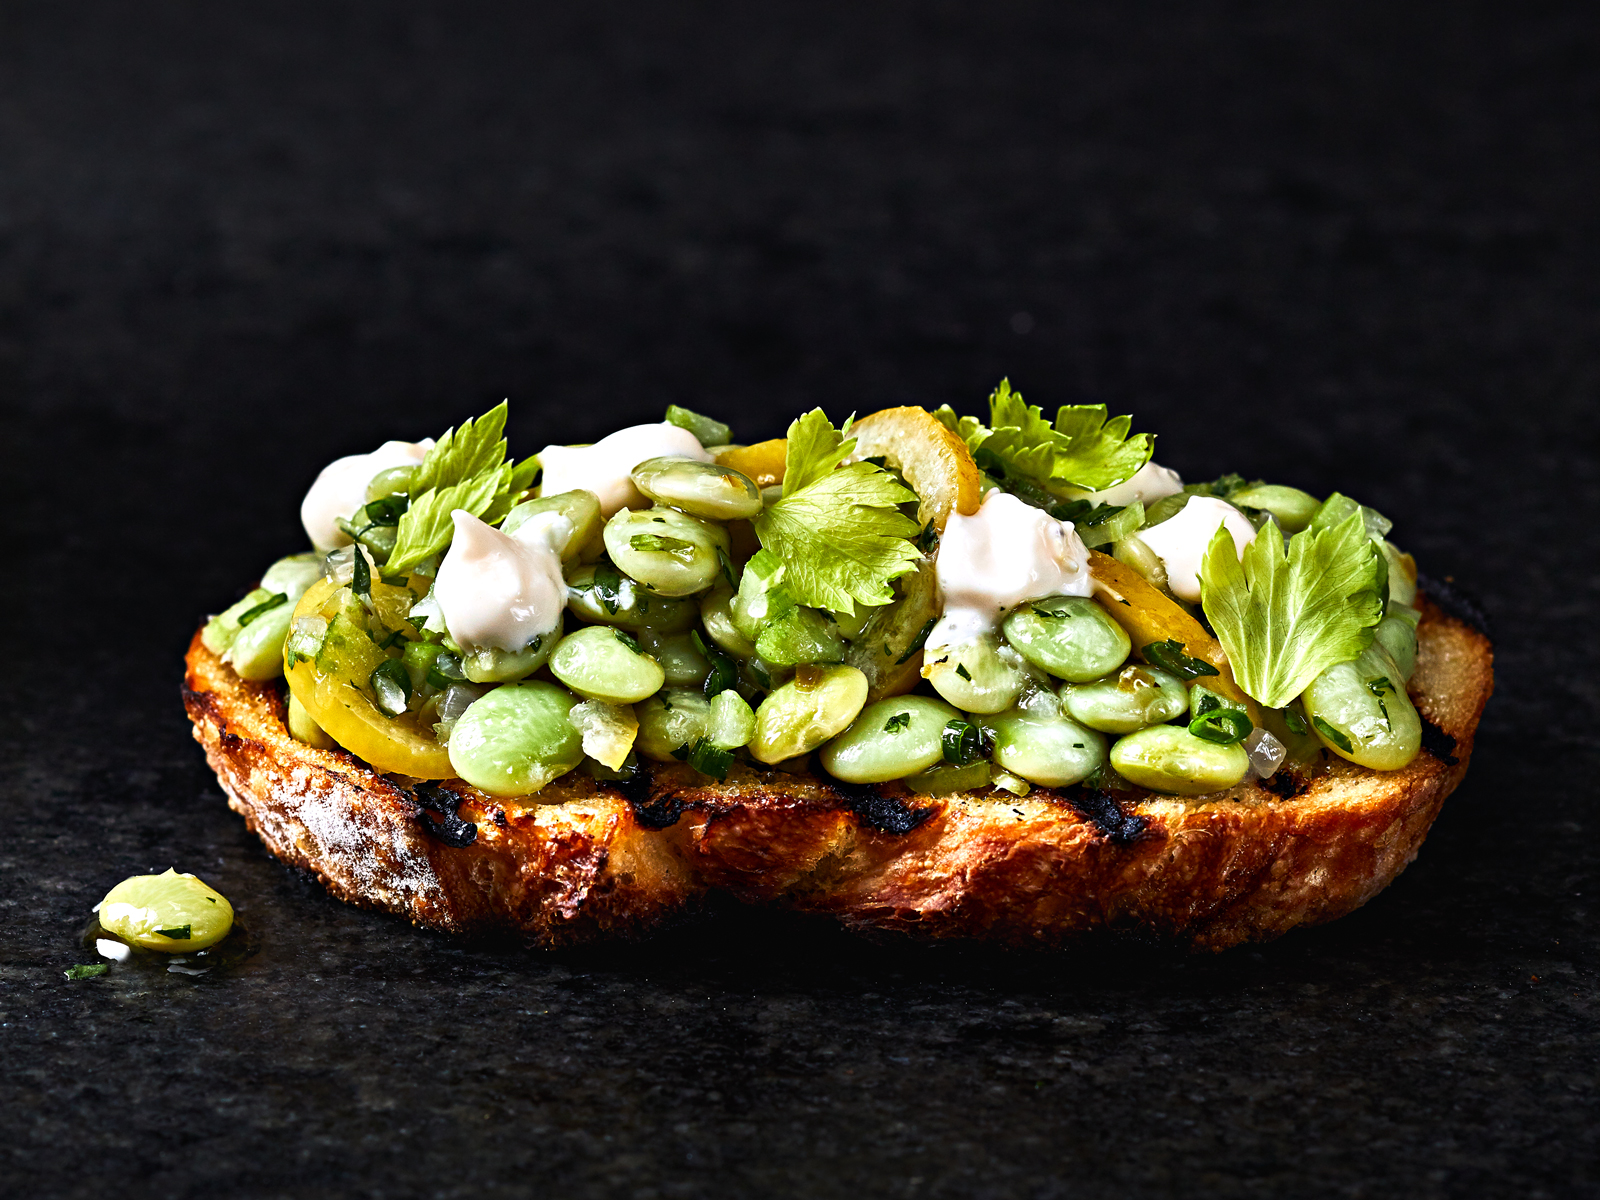 Garlic Toasts with Lemon Aioli and Marinated Beans